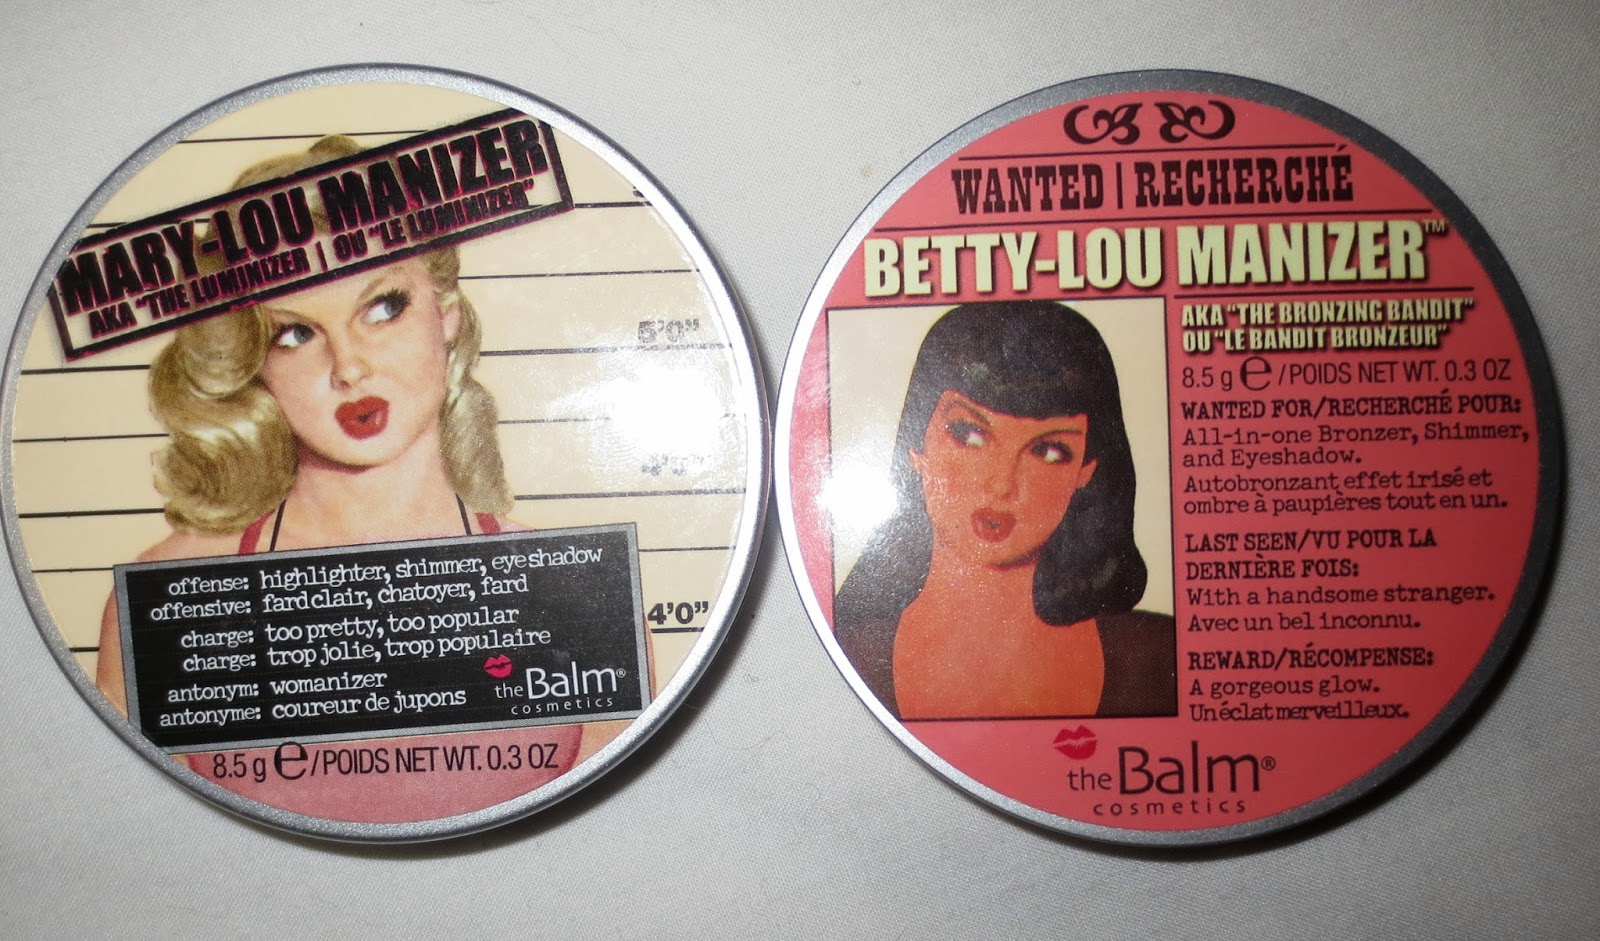 The Balm Manizer Duo Kit